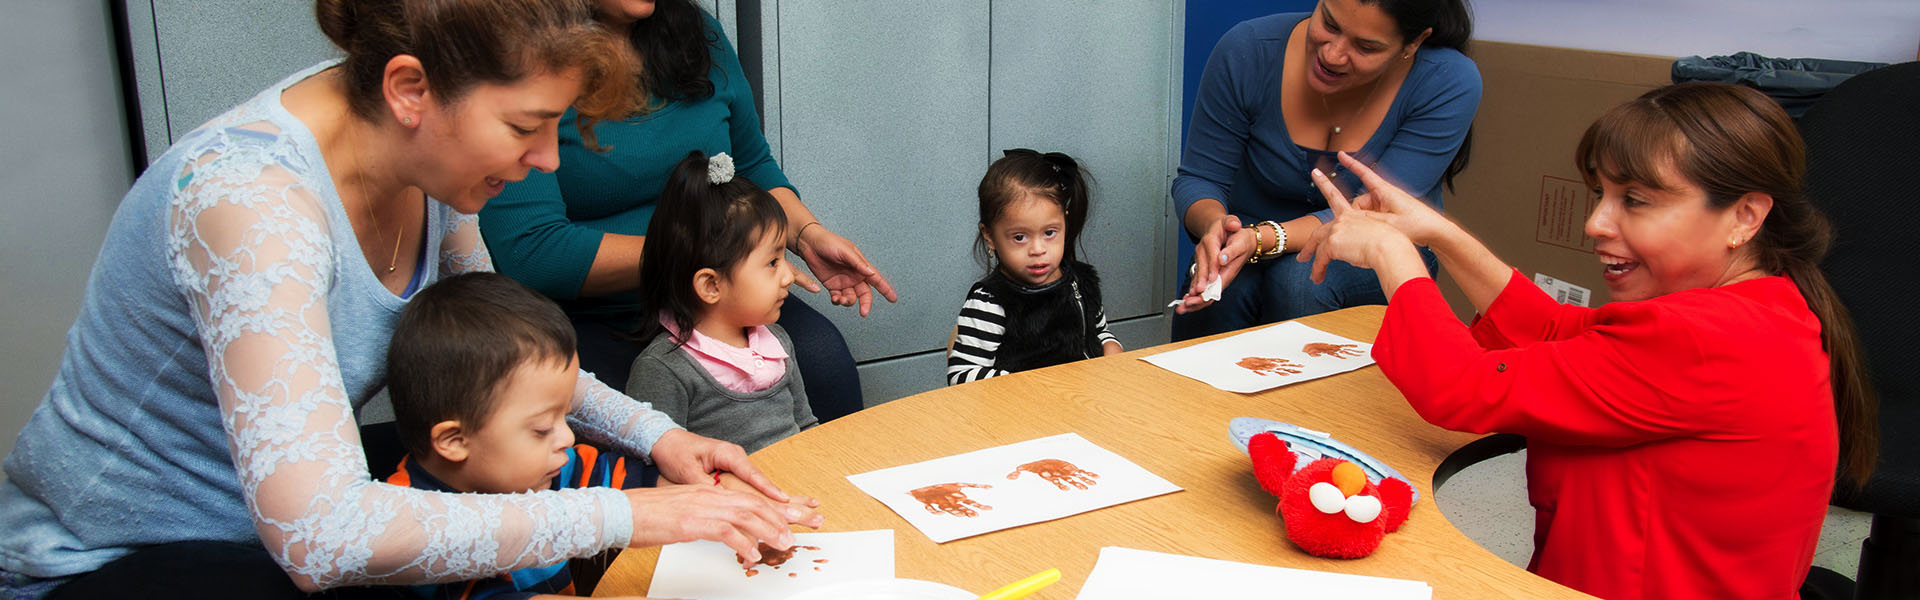 Preschool disabled classroom at NJEDDA - private special education Clifton NJ